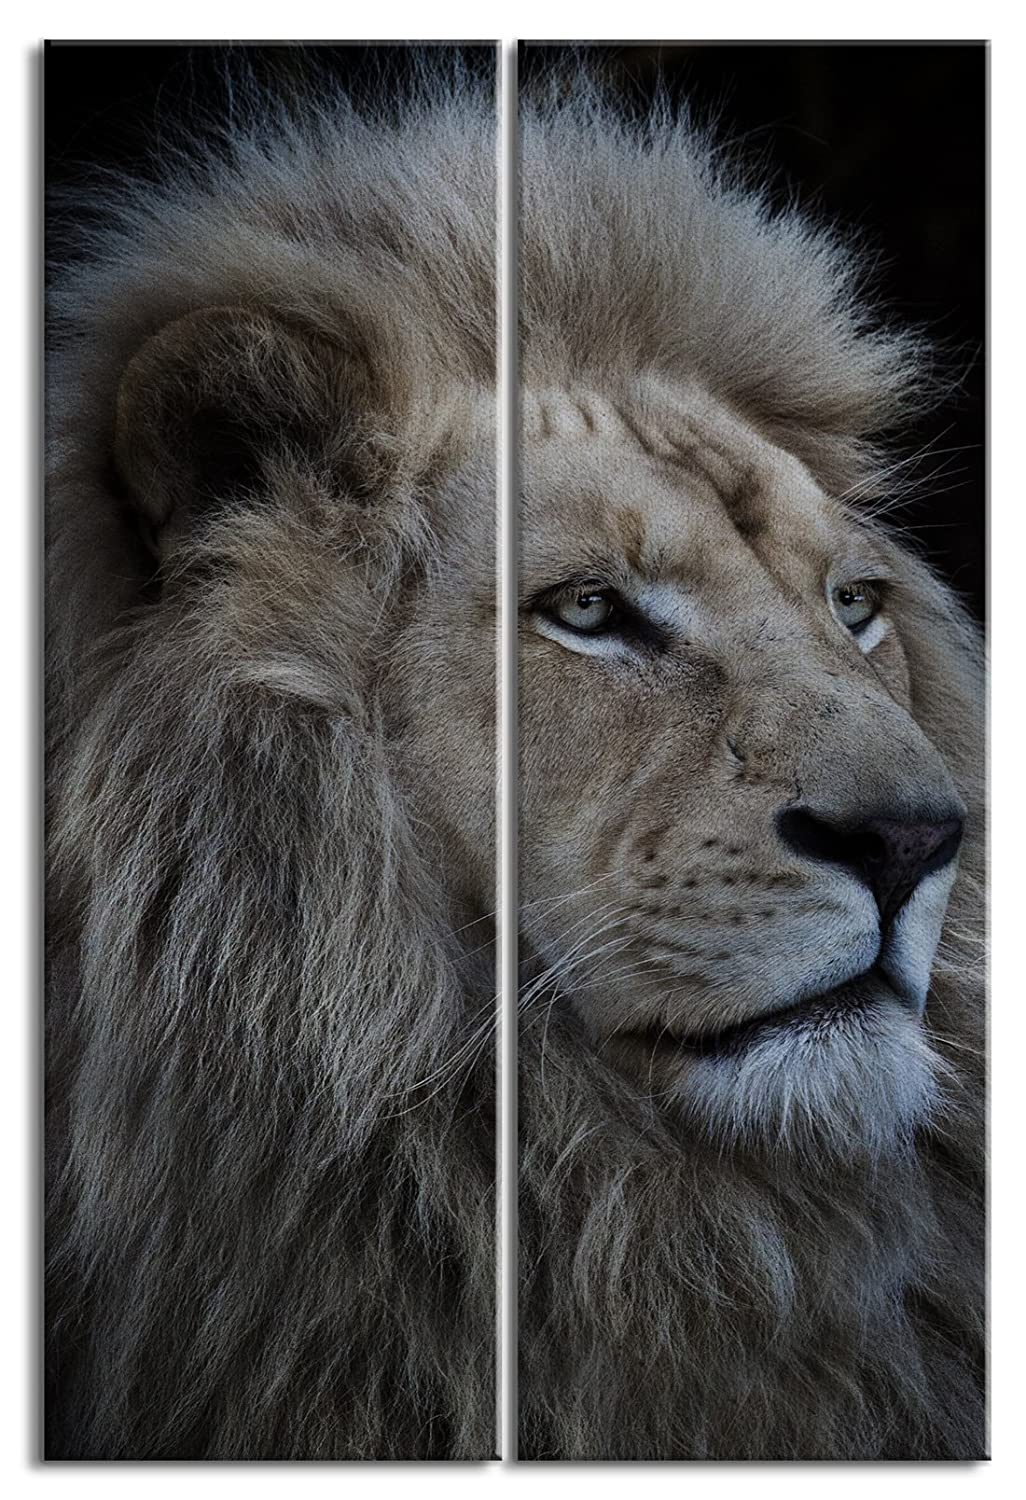 JP London Ready to Hang and Proudly made in North America DMCNV1X1007802 Jpl and Louise Wolbers Present Proud Lion African Plain Roar Simba 2in Thick 2 Piece Each 12in by 36in Gallery Heavyweight Canvas Wall Art at Overall 3 2 ft